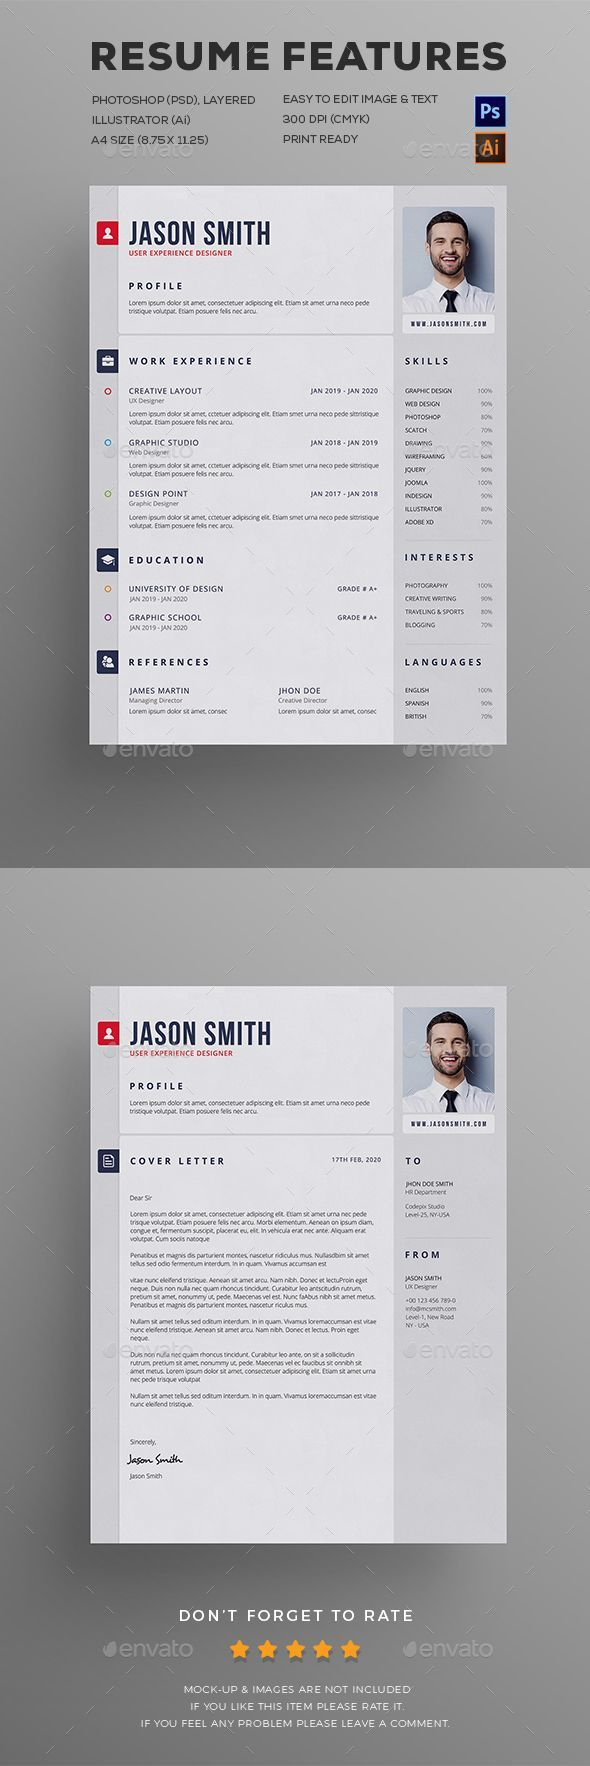 Resume 1534 best Resume Design images on